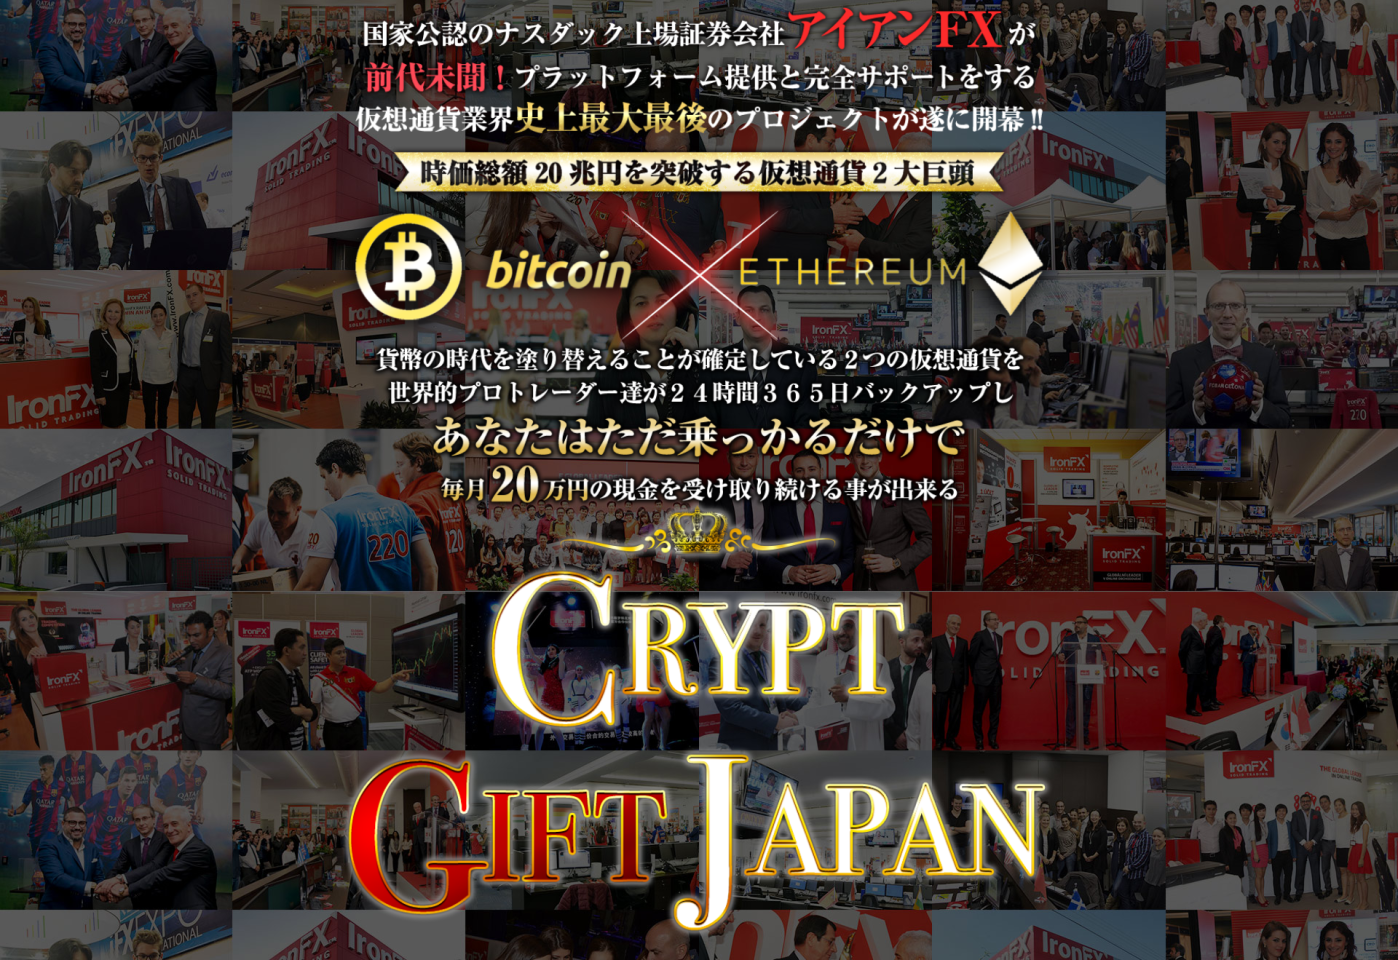 CRYPTO GIFT JAPAN